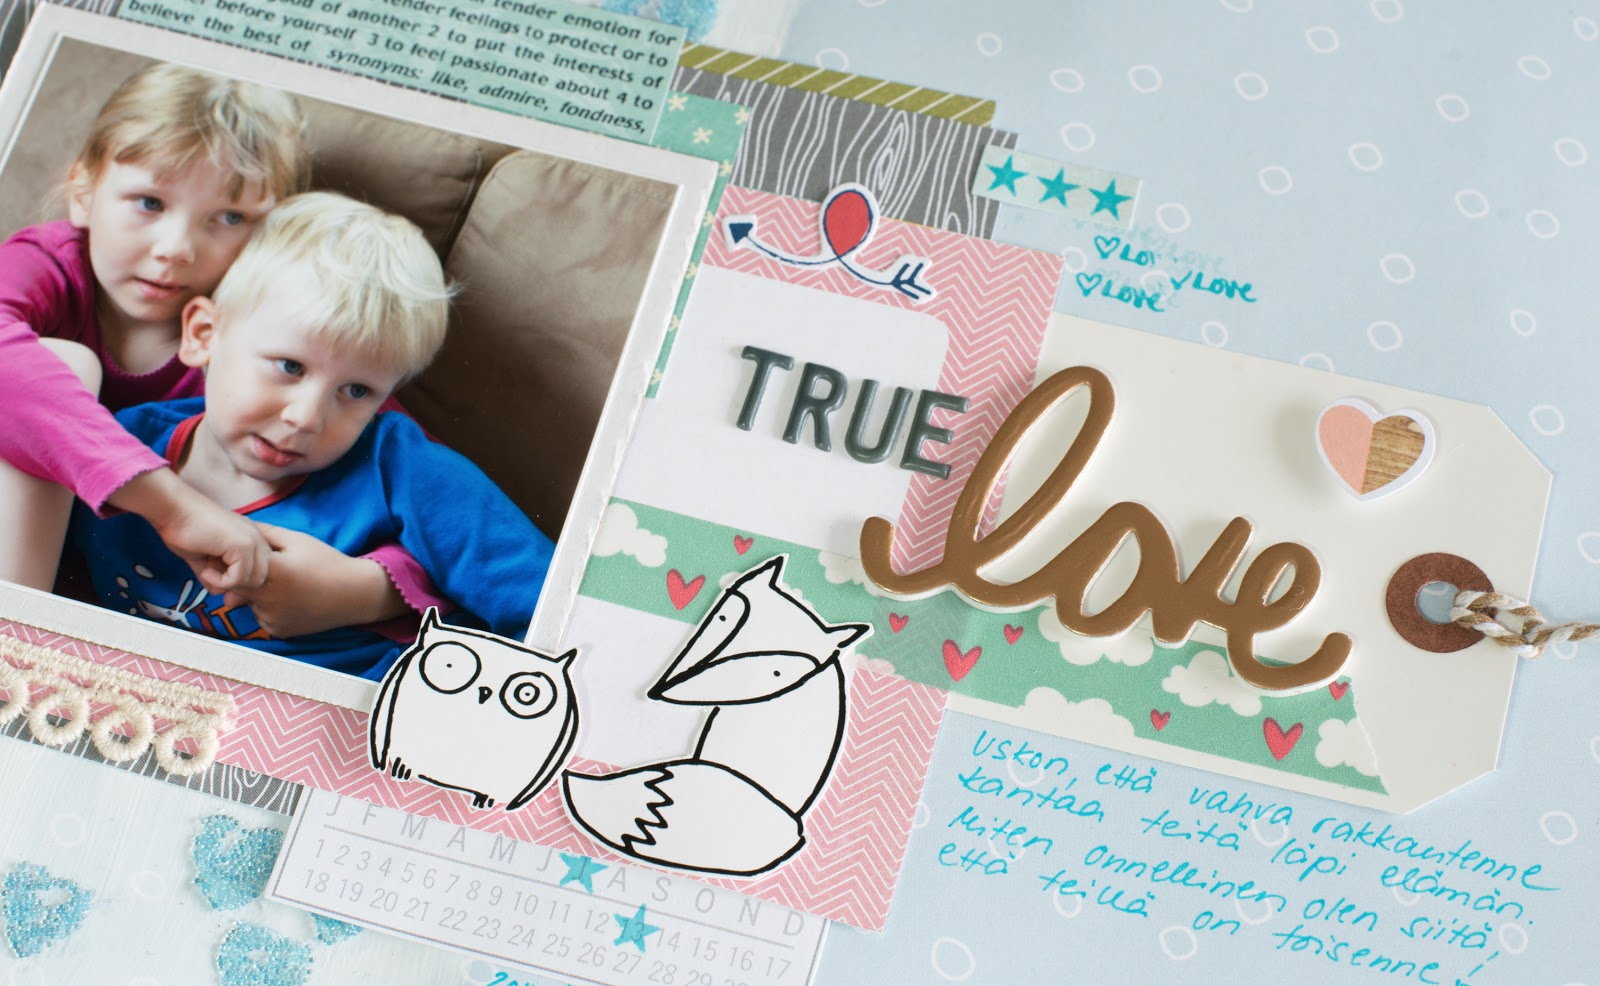 Scrapbooking layout with mixed media elements and lots of layers